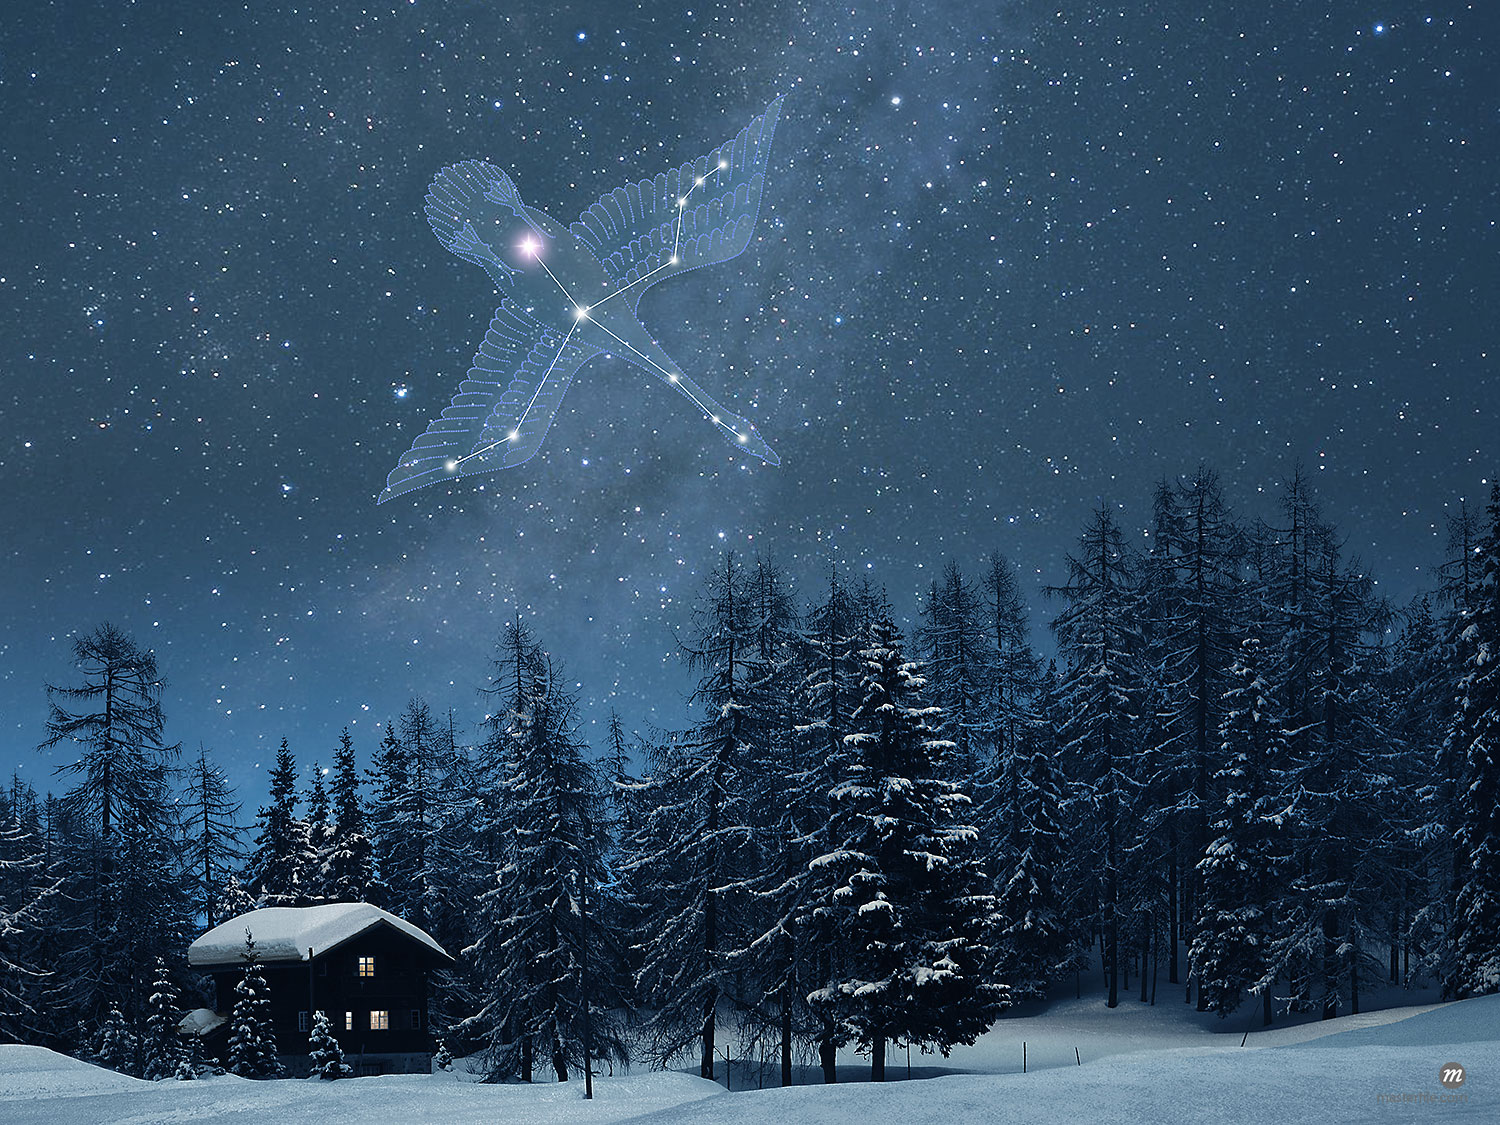 Cygnus constellation in night sky over a snow covered house and trees, Switzerland  © Masterfile